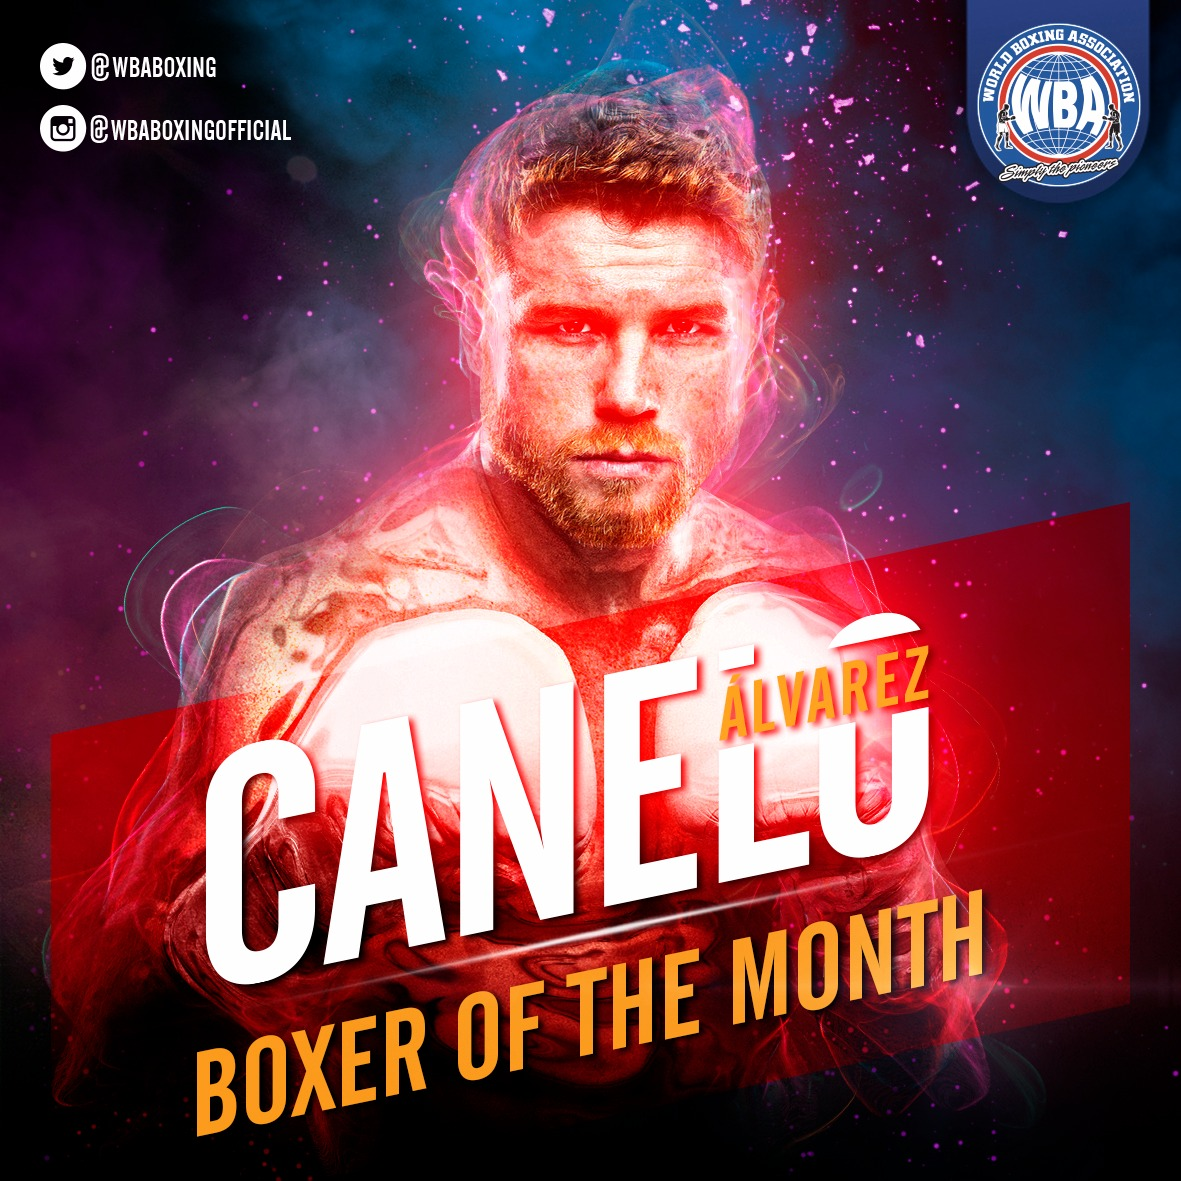 WBA May Rankings and Boxer of the Month